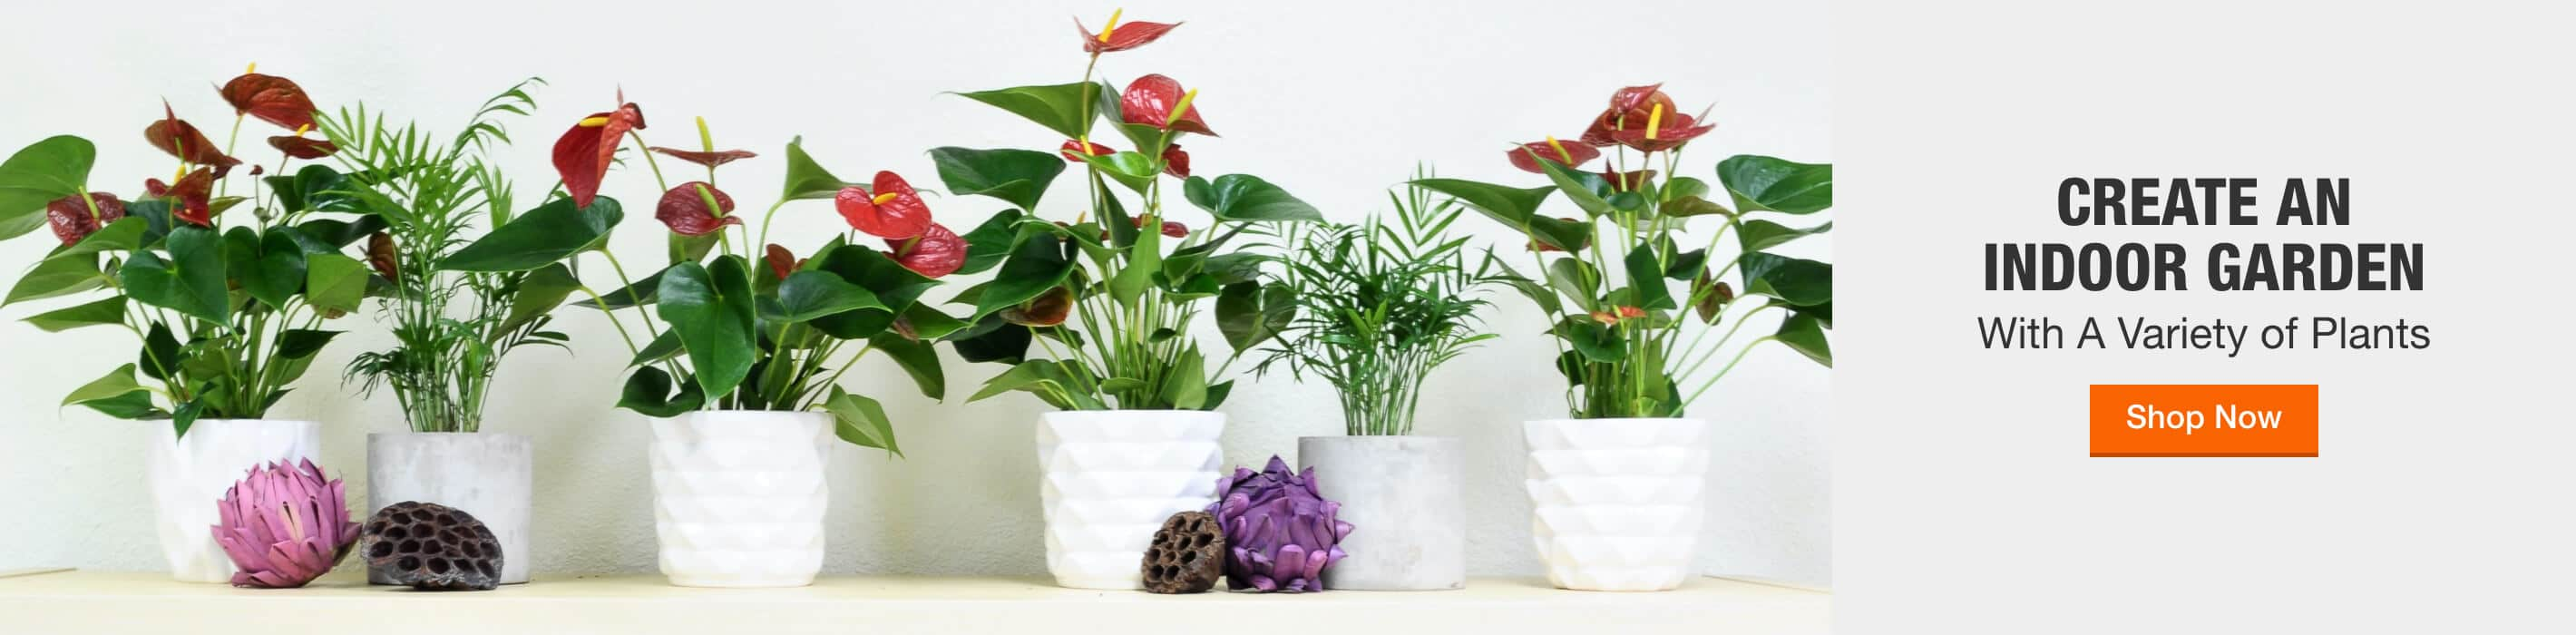 CREATE AN INDOOR GARDEN With A Variety of Plants Shop Now